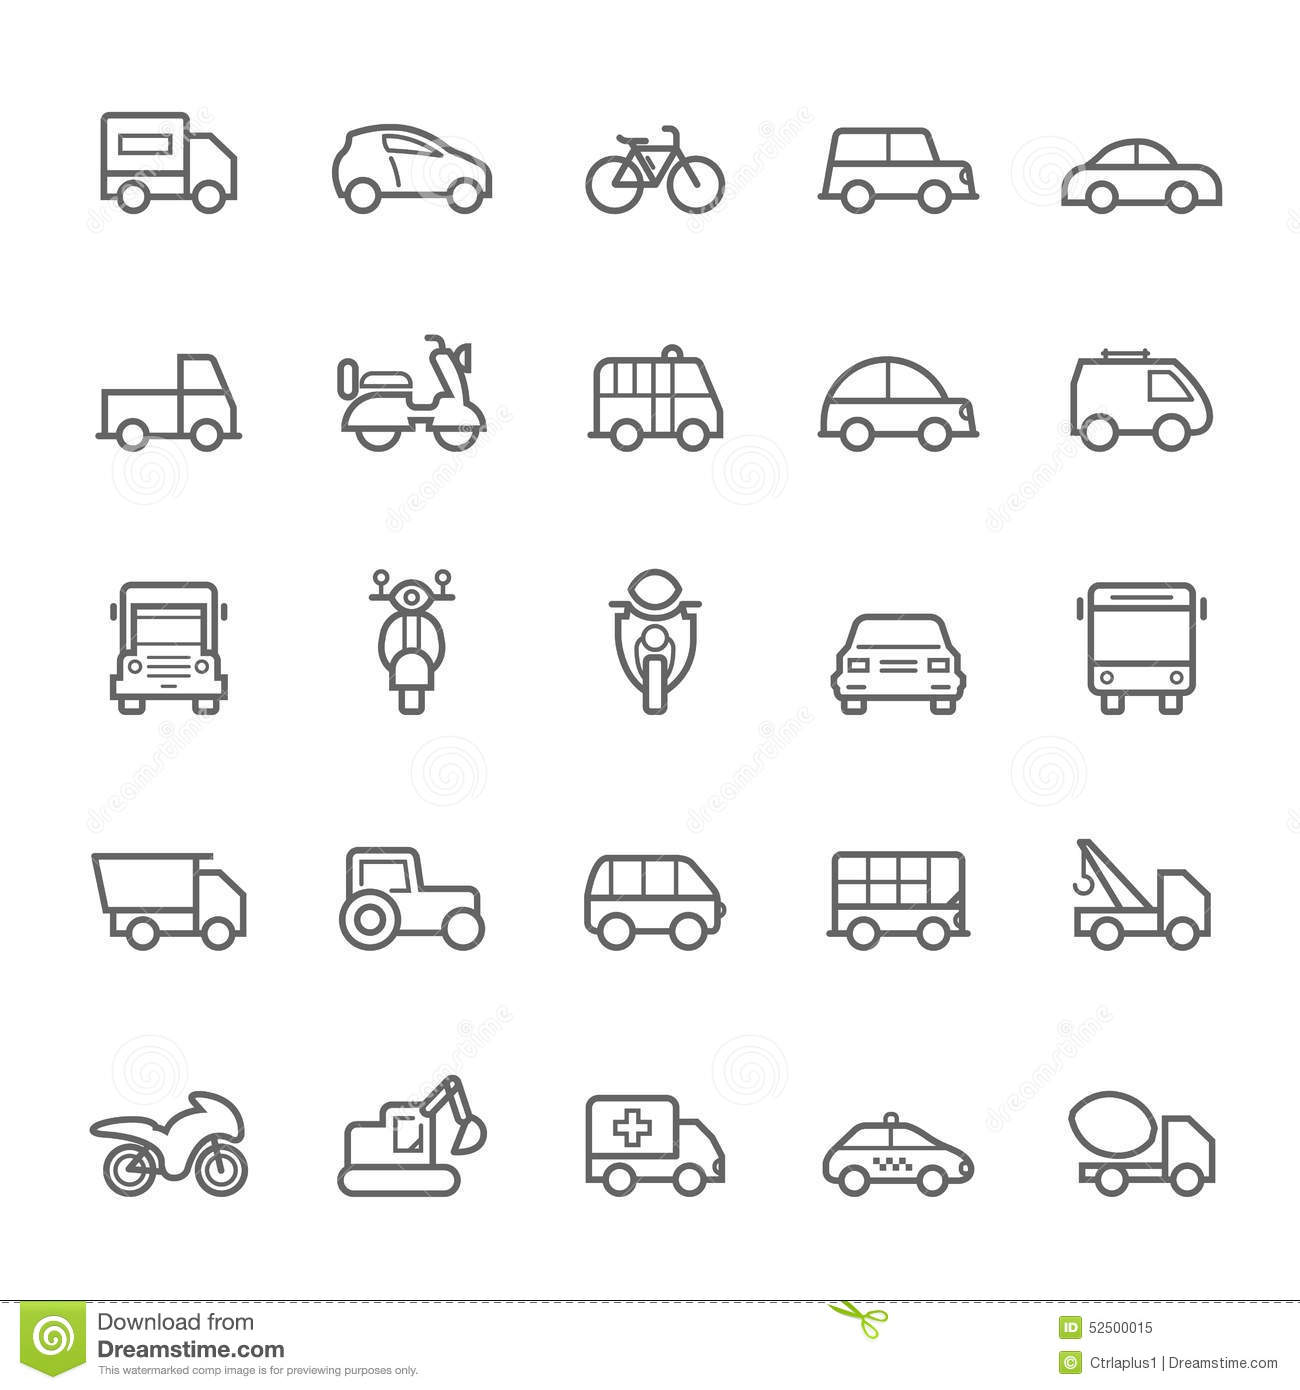 Stars Border Template besides Autonomous car driverless driving lidar self vehicle icon in addition Watch also Puppy Clipart also Stock Illustration Transport Icons White Backgroundtransport Icons Outline Stroke White Background Vector Illustration Image52500015. on truck illustration